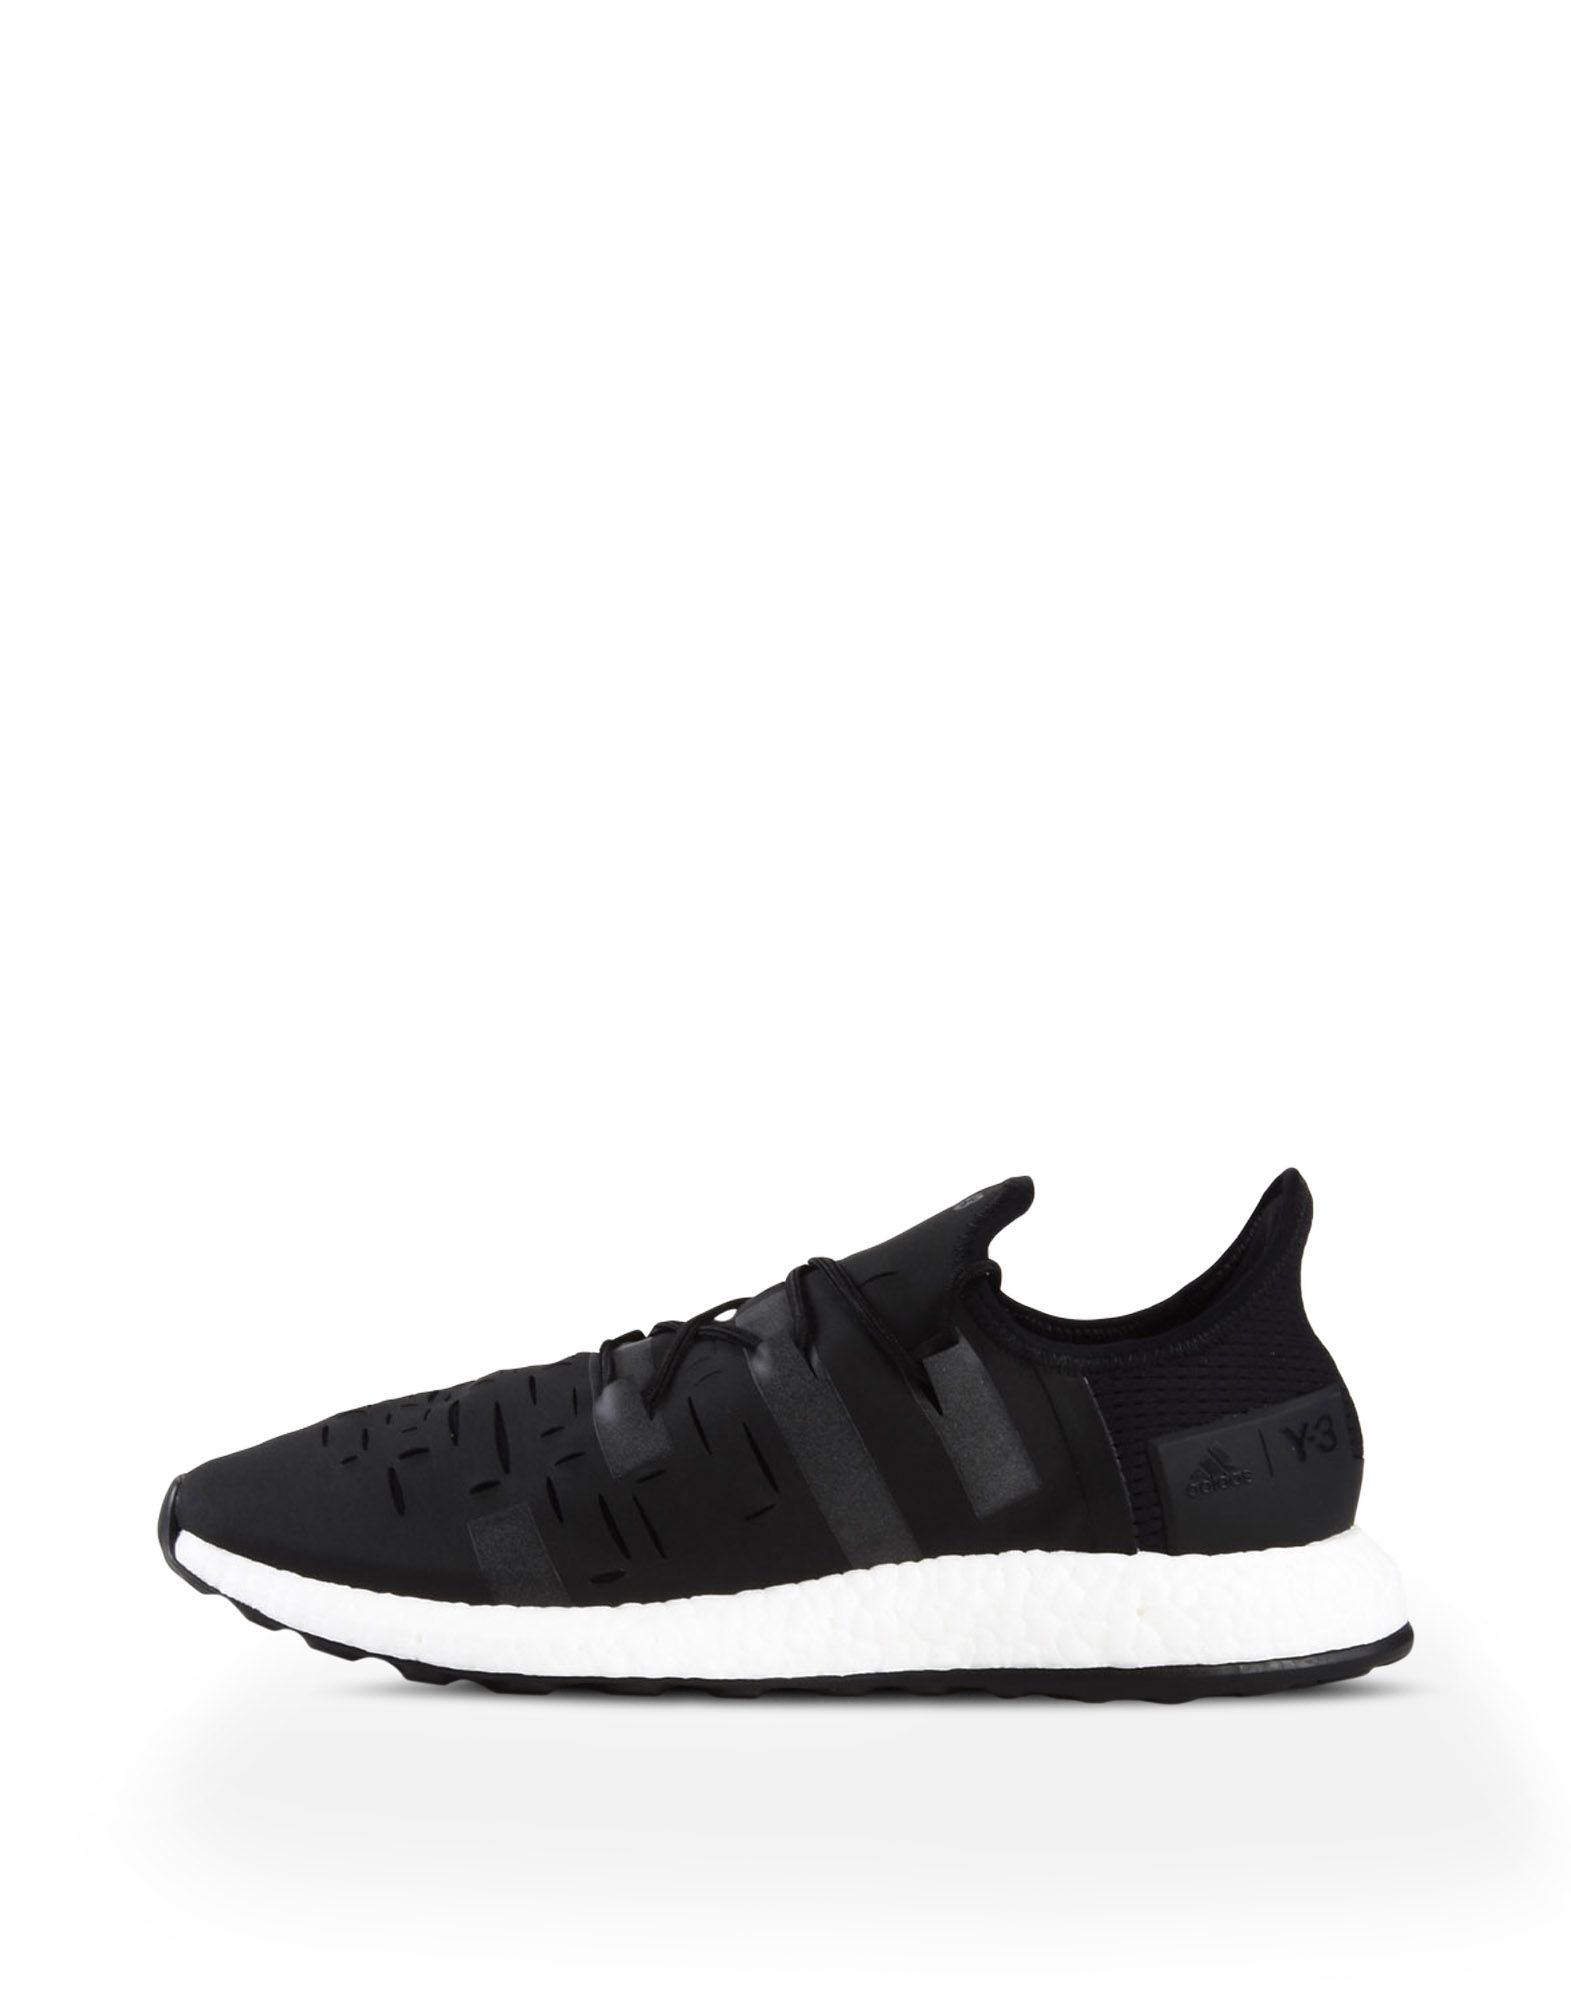 Y-3 SPORT APPROACH LOW Shoes unisex Y-3 adidas